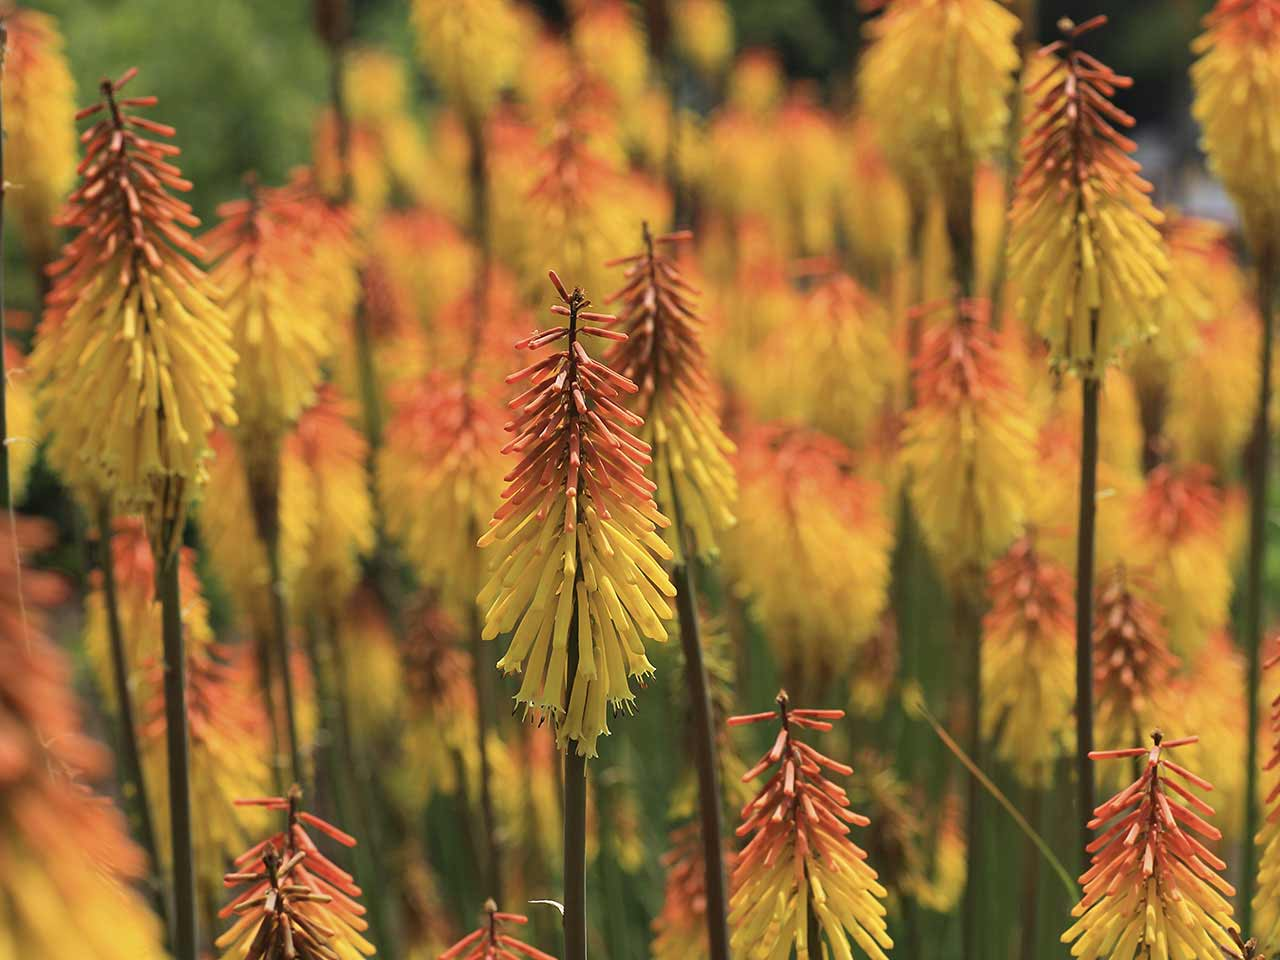 Kniphofias growing outside in garden